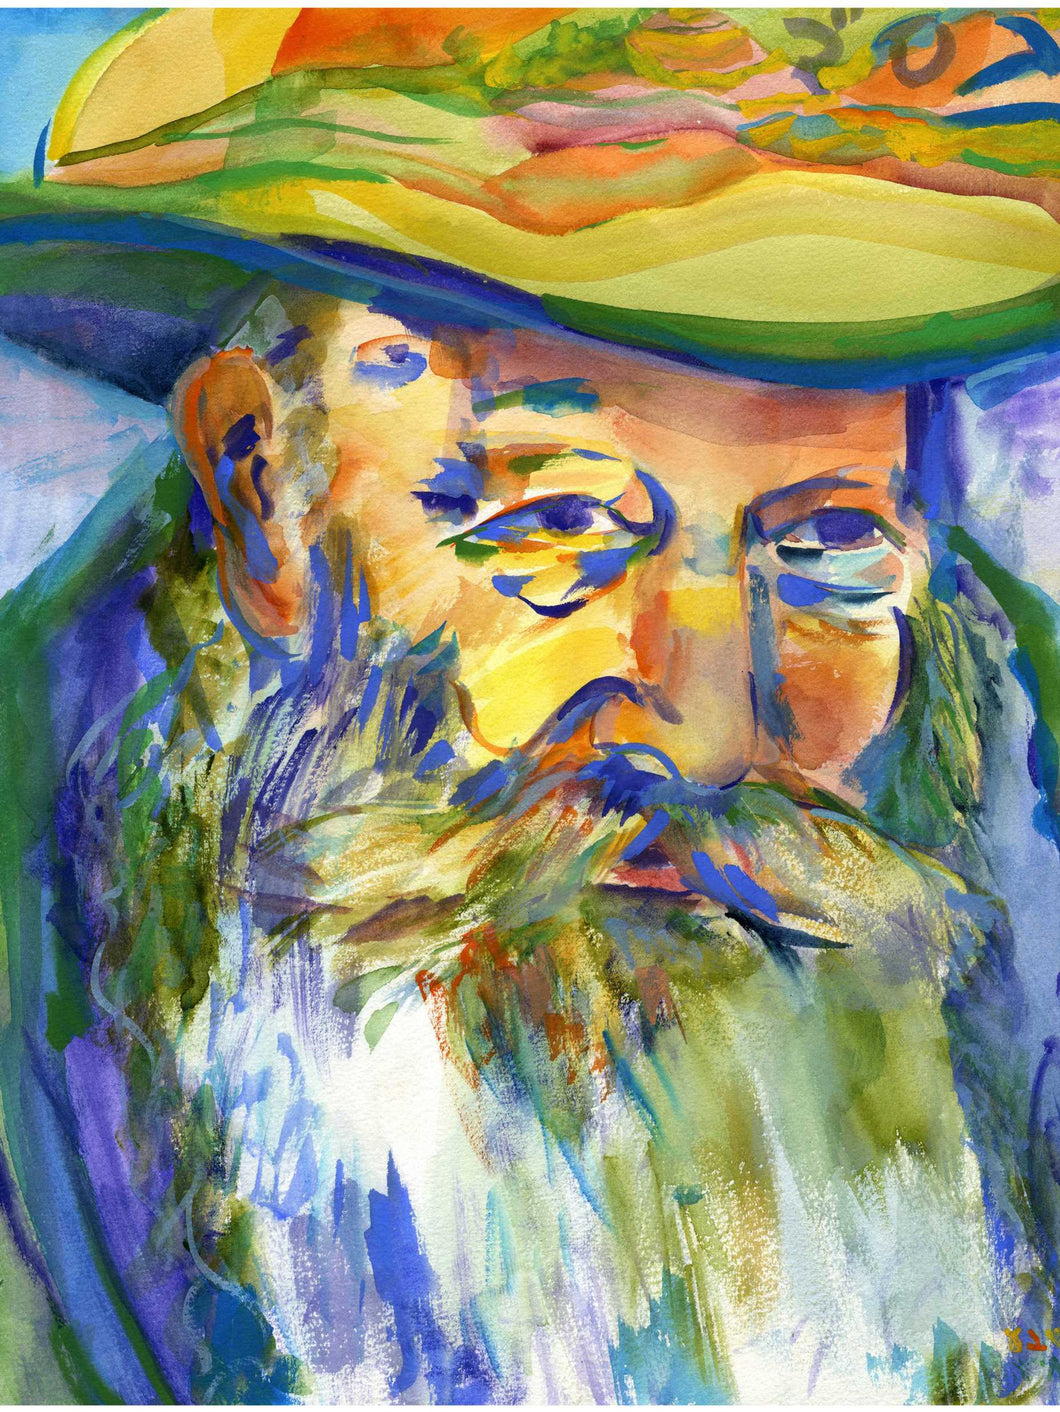 The Rebbe of Lubavitch